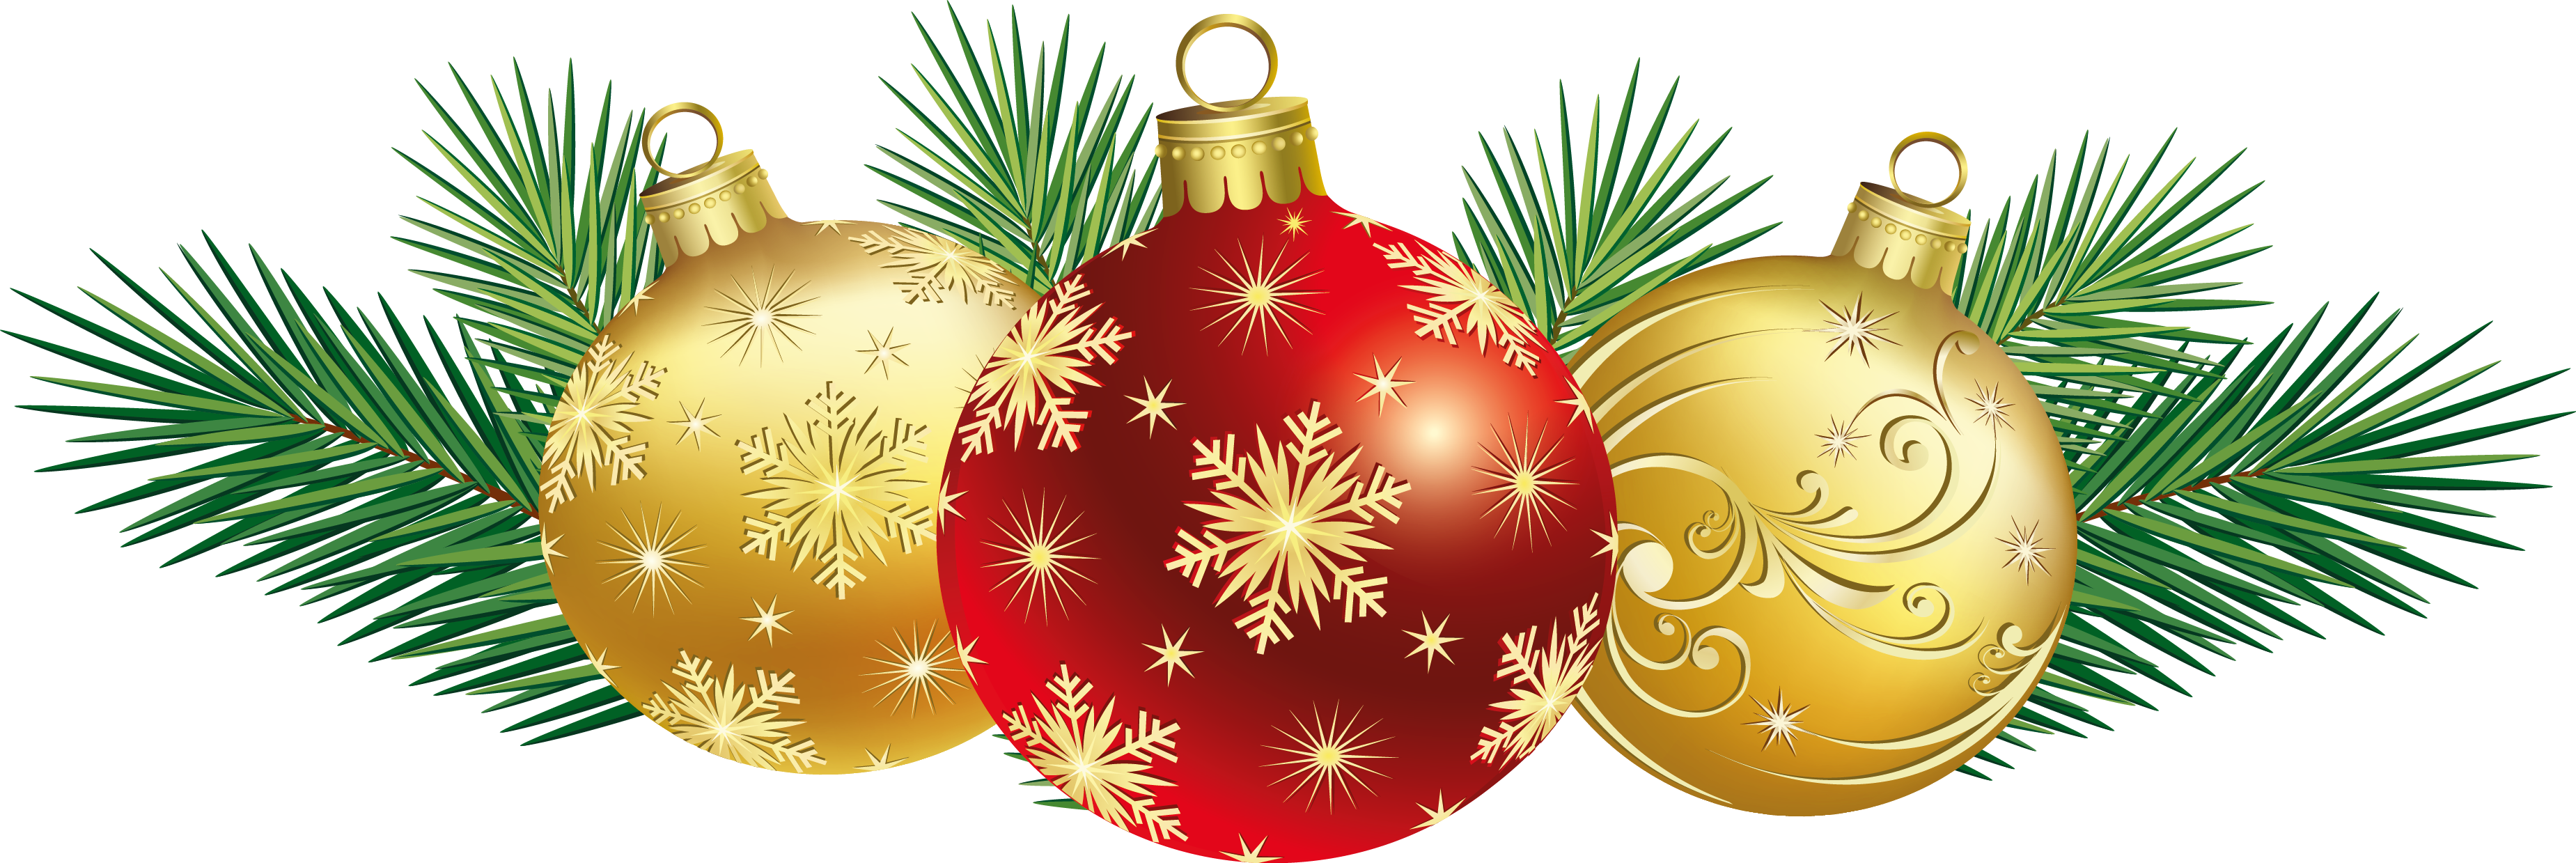 Download Decorations Picture HQ PNG Image   FreePNGImg